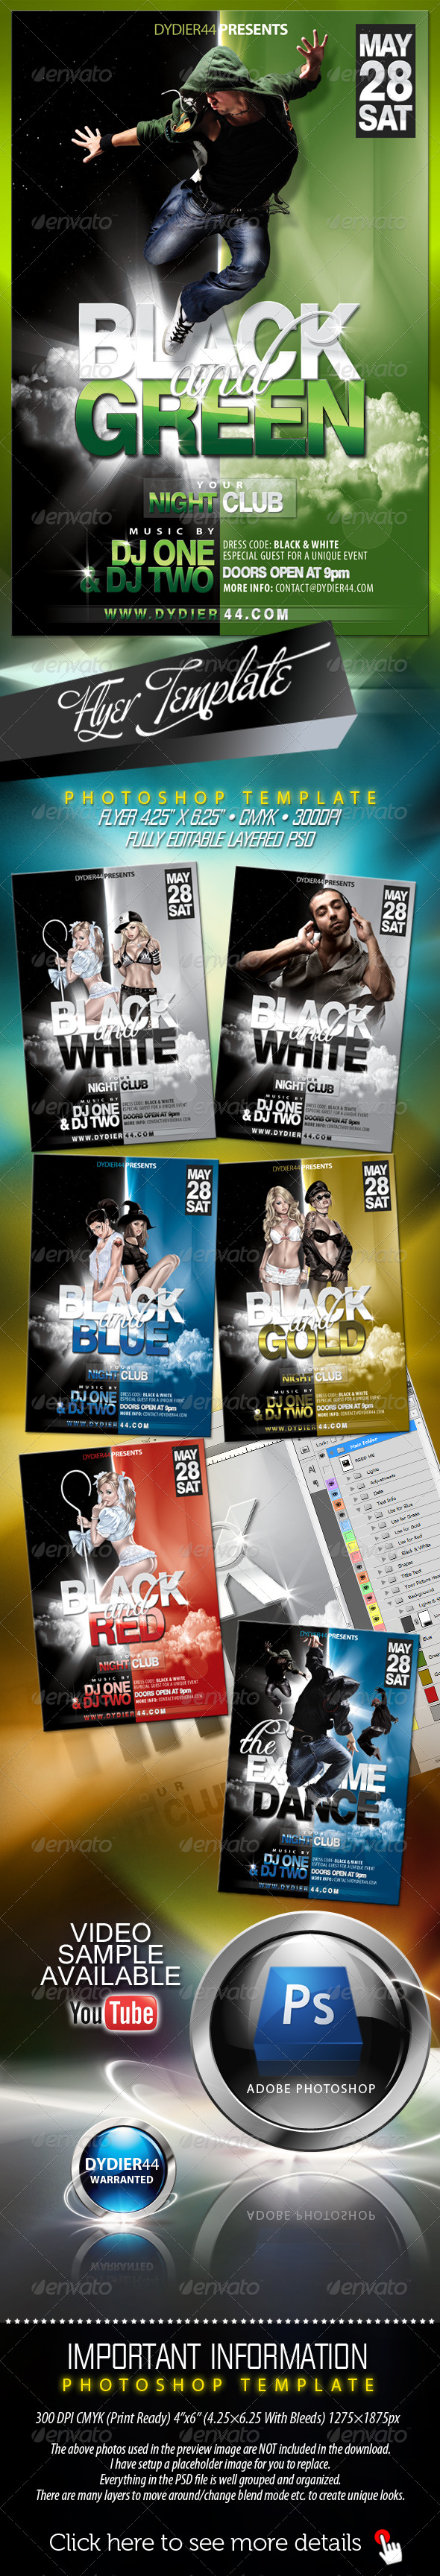 Black & Green (Flyer Template 4x6) - Clubs & Parties Events